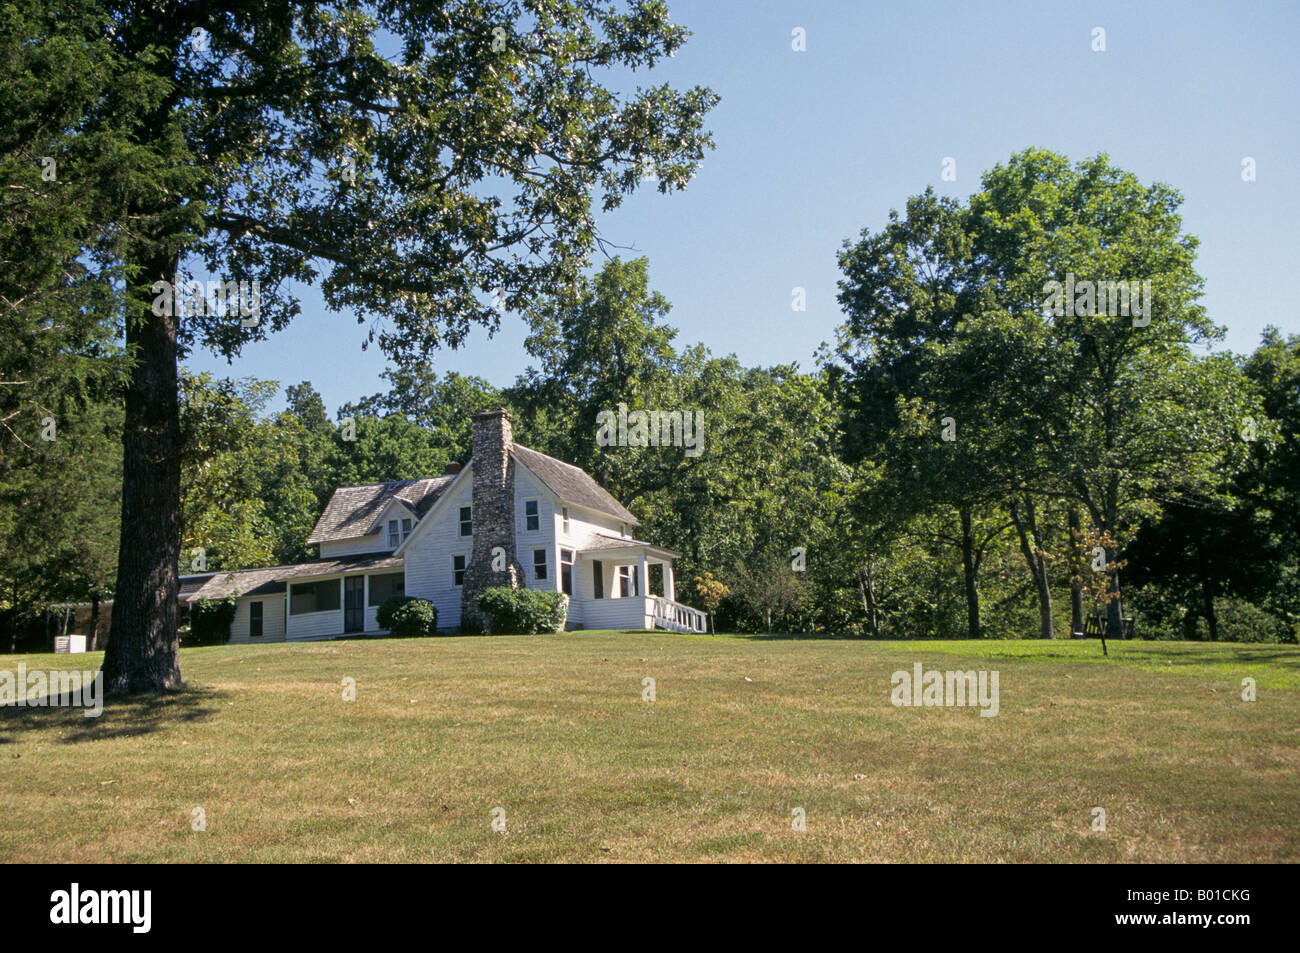 Rocky Ridge FArm the home of Laura Ingalls Wilder author the Little House On The Prairie books which were written - Stock Image